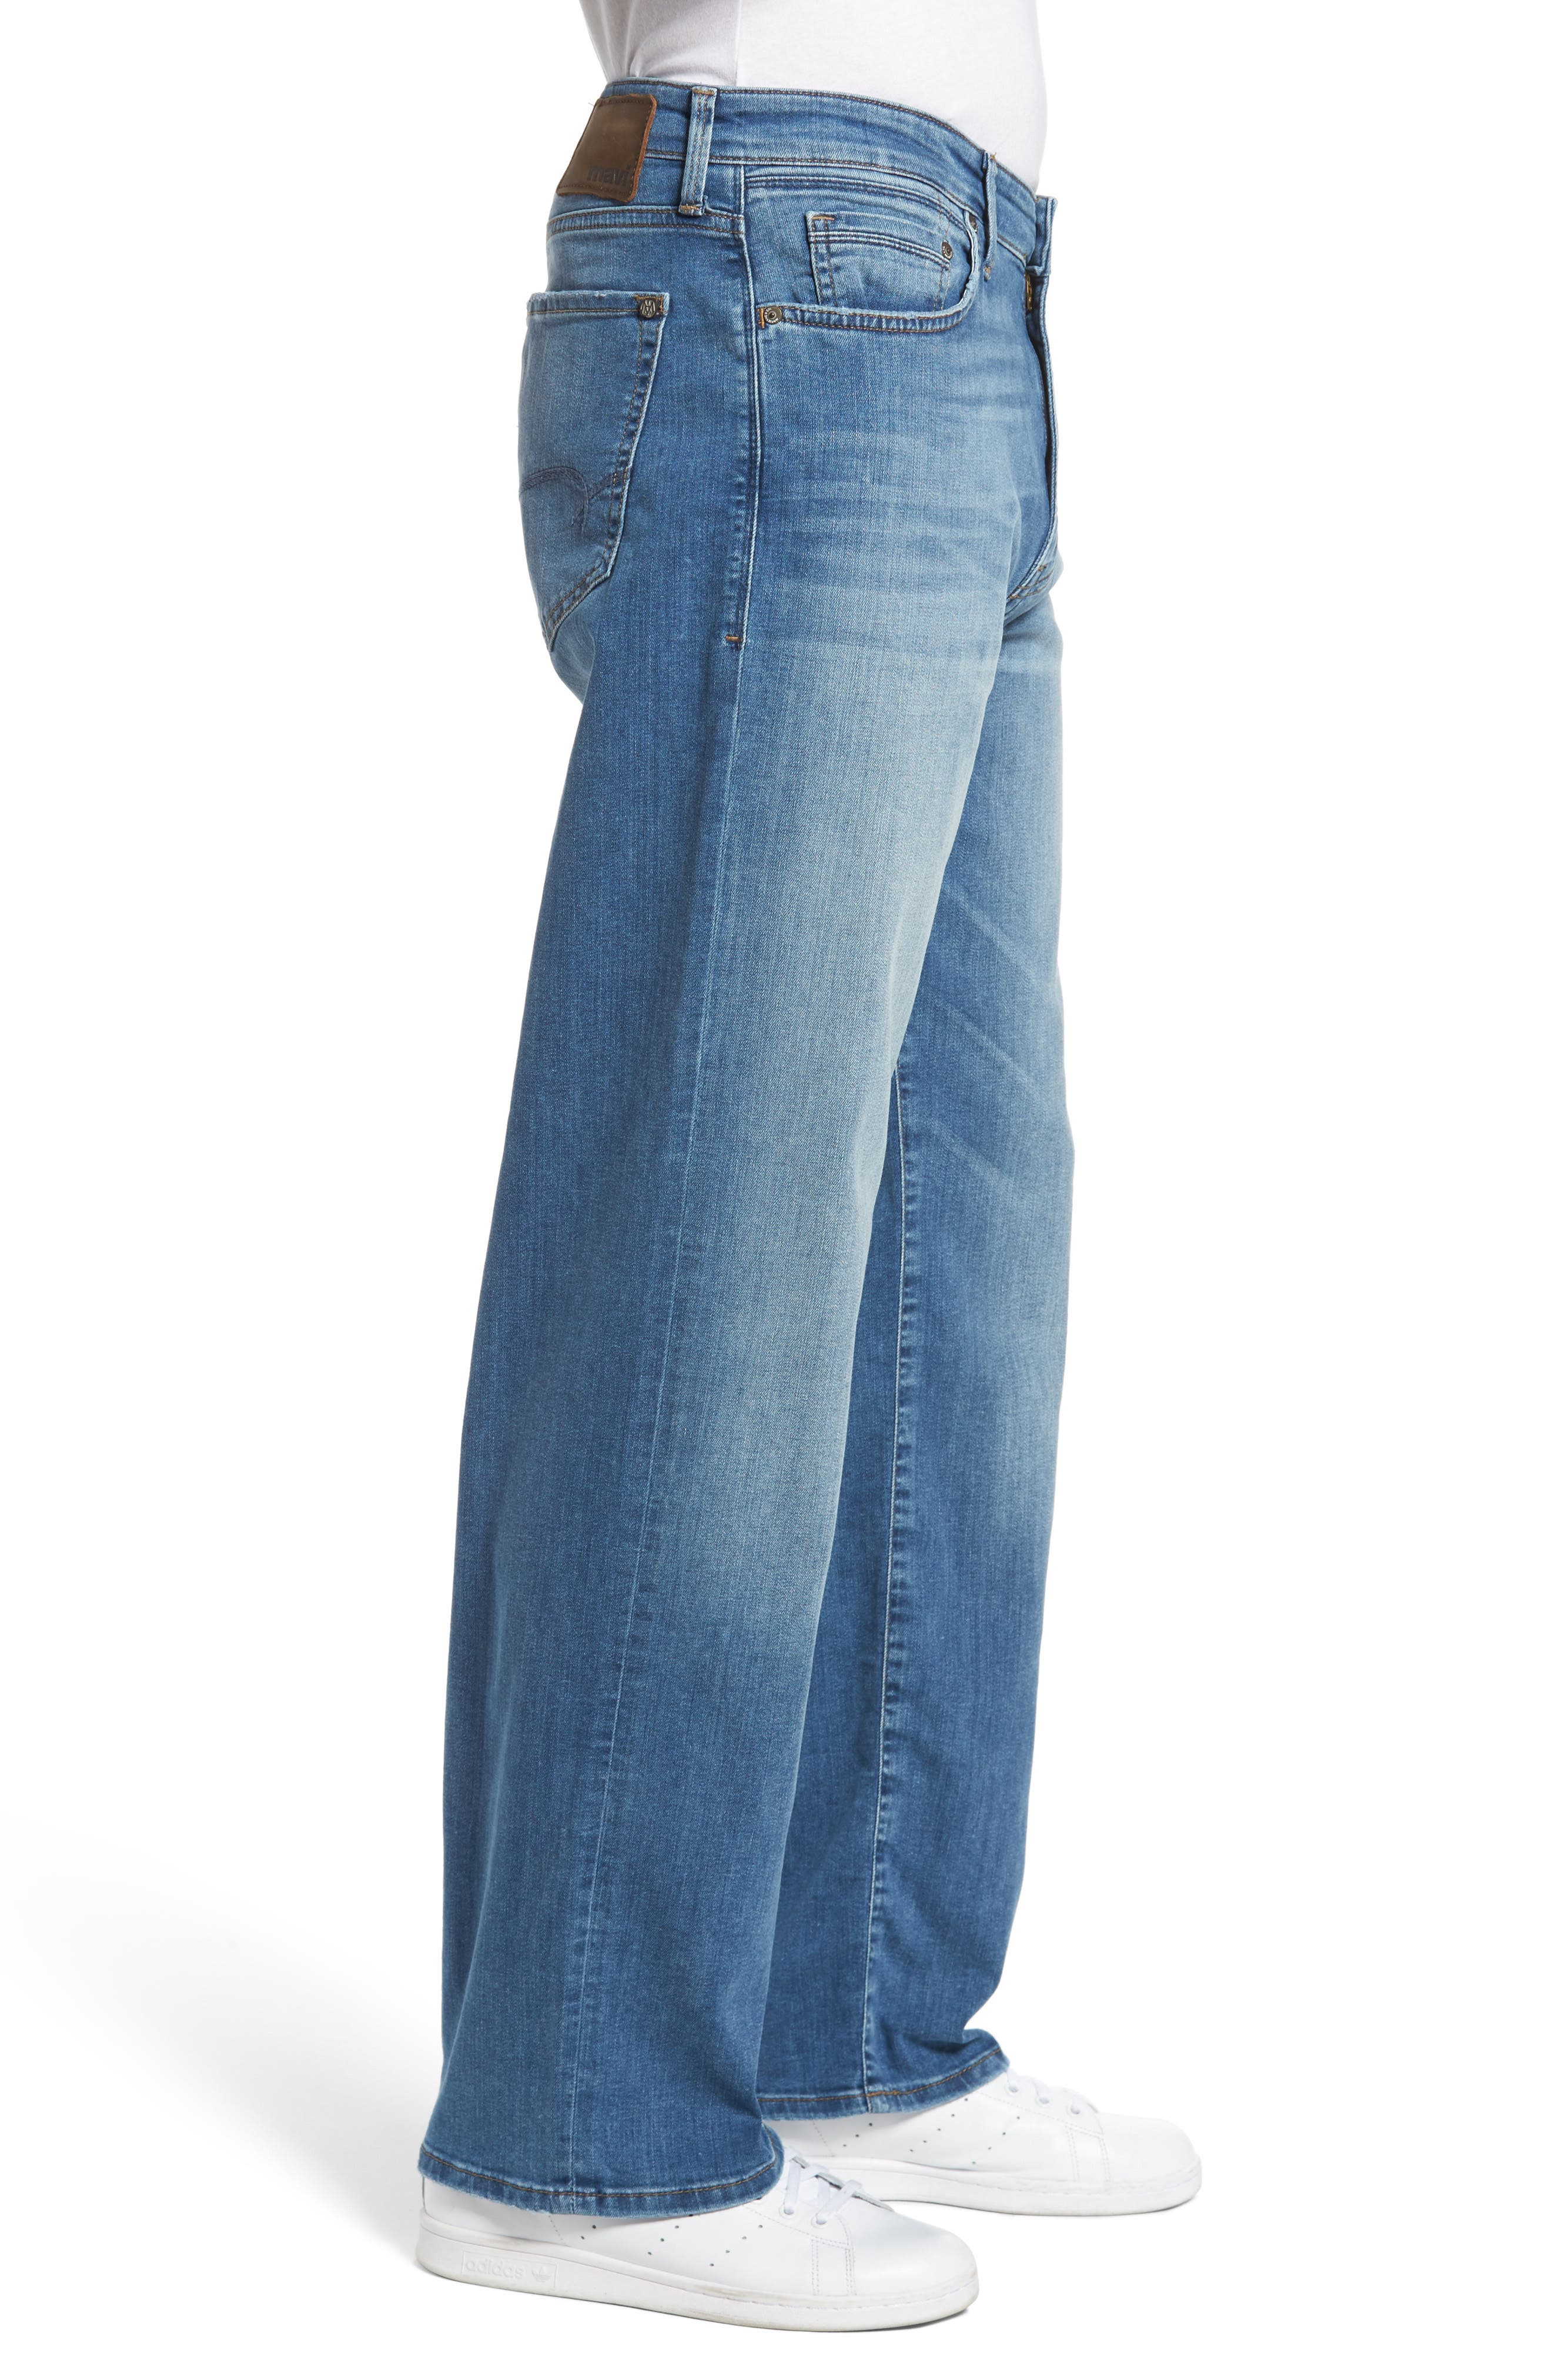 Max Relaxed Fit Jeans,                             Alternate thumbnail 3, color,                             401